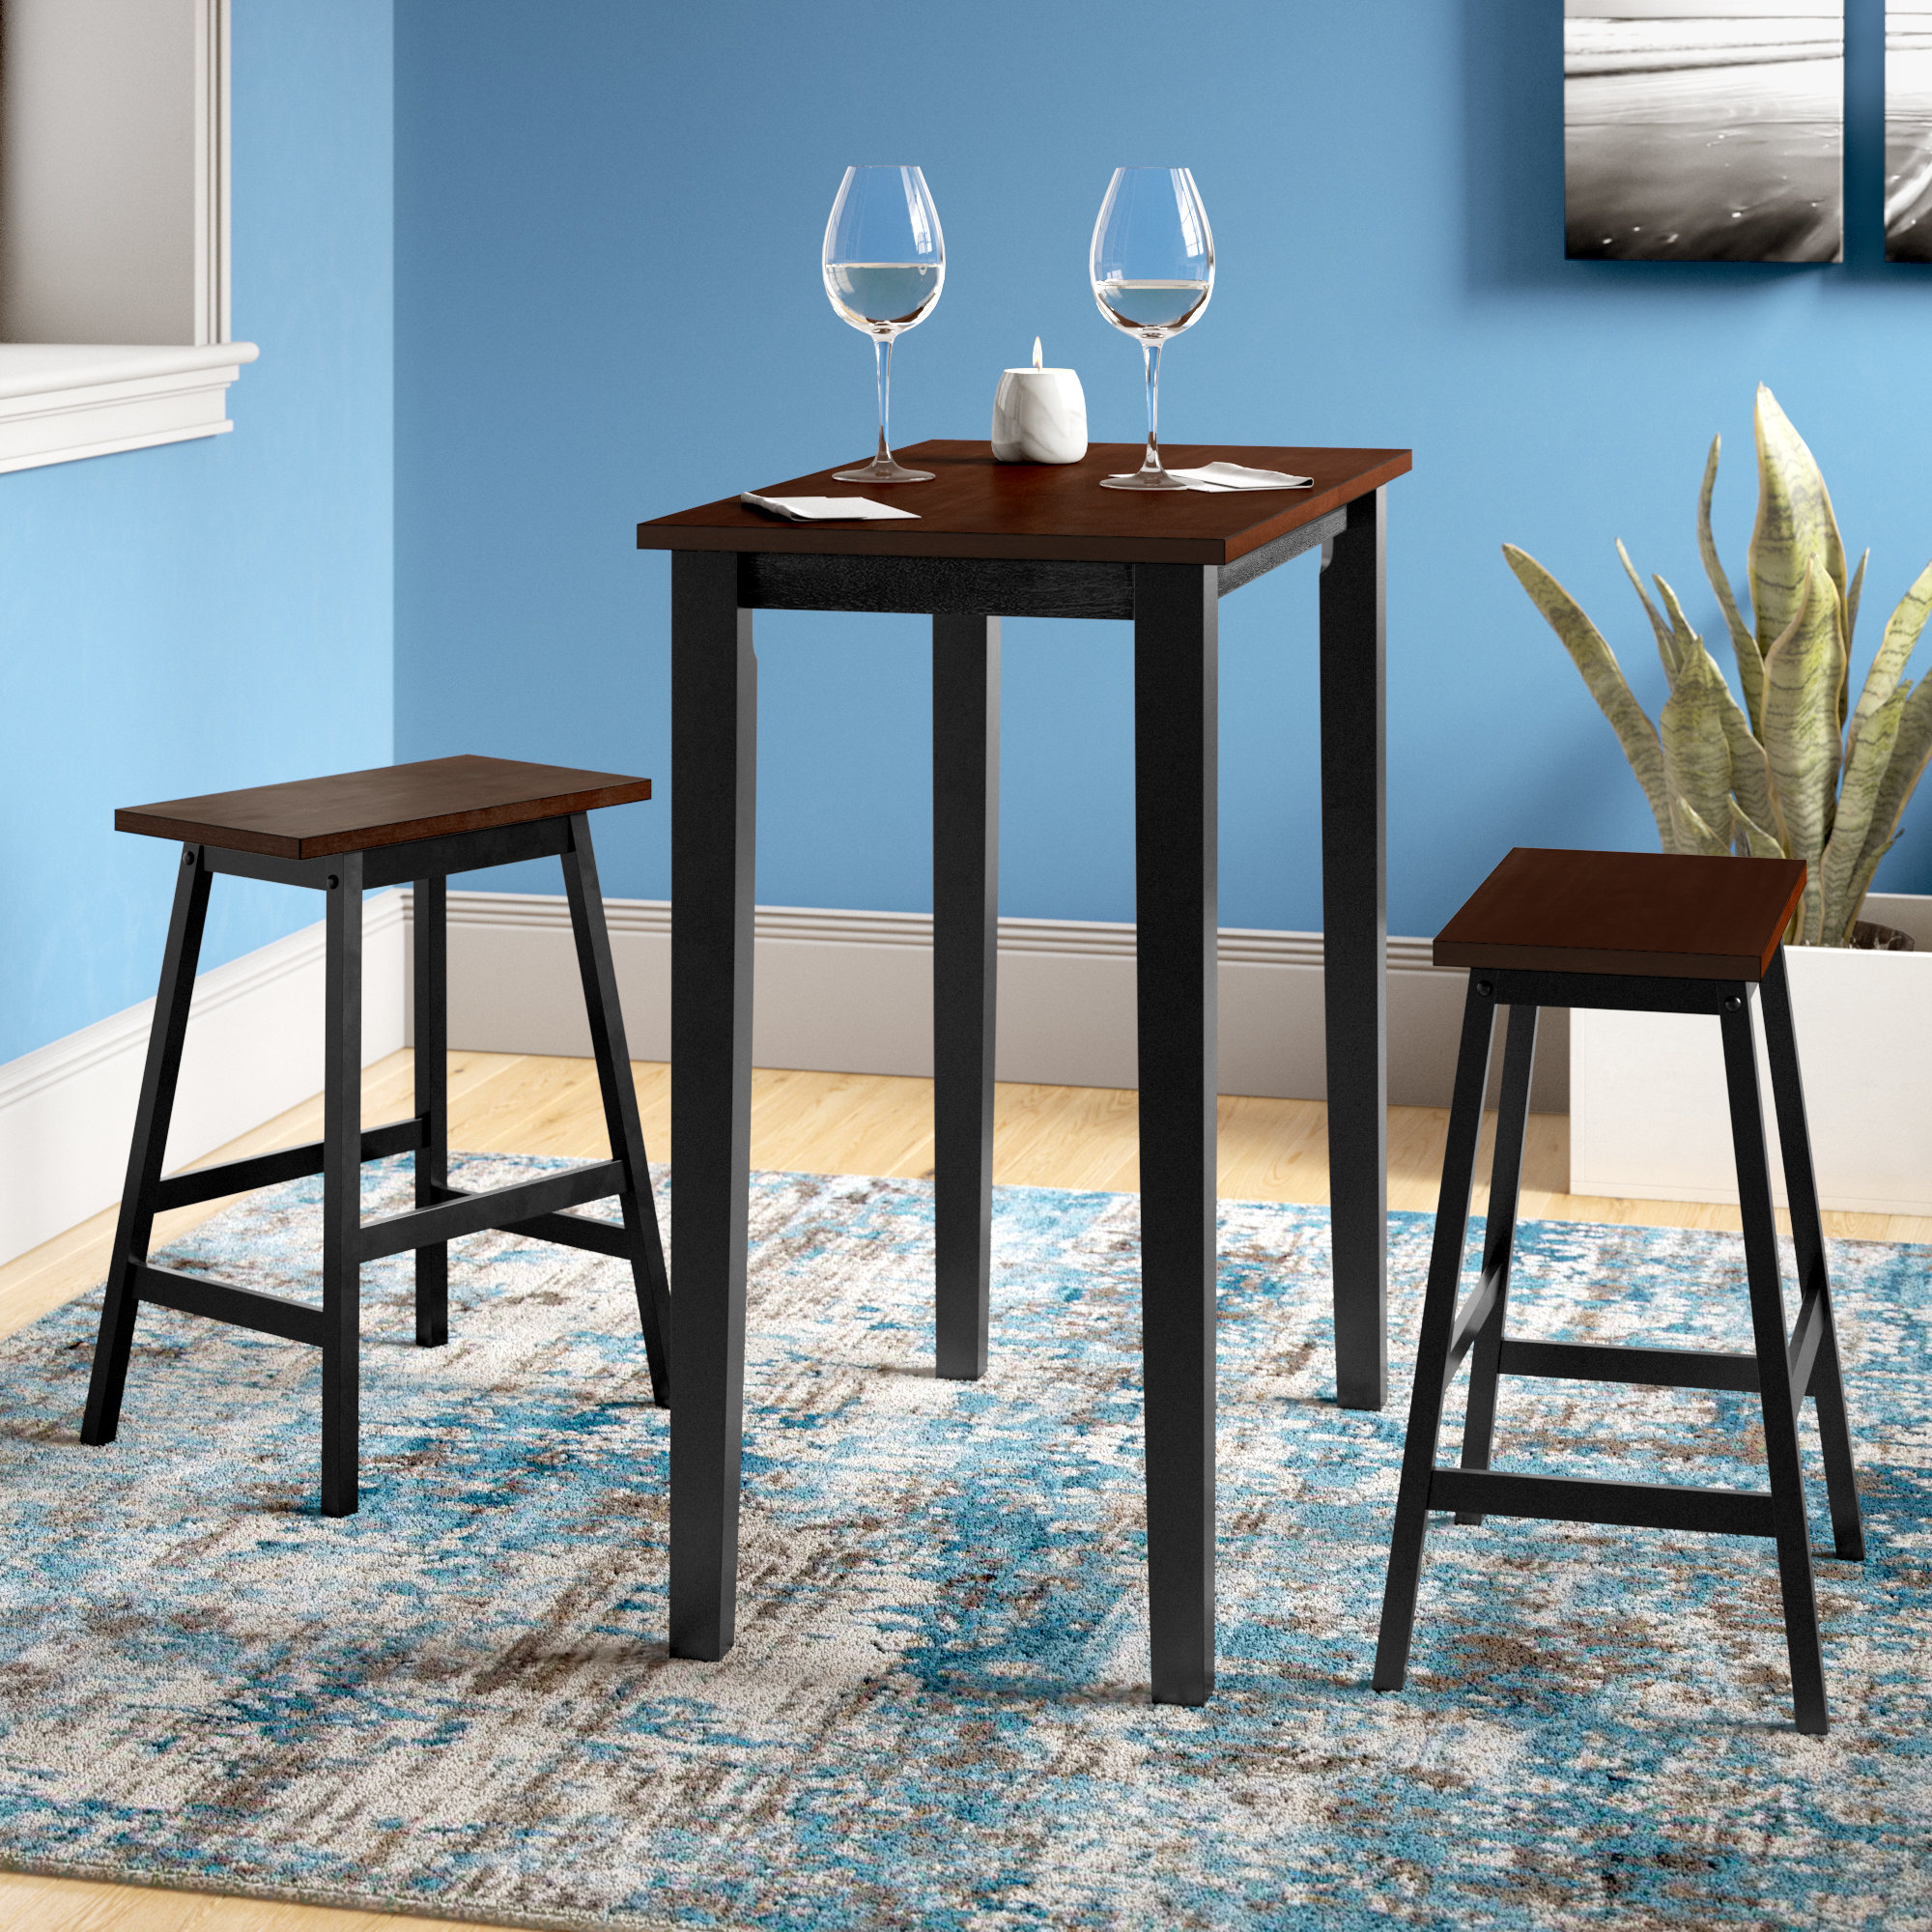 Wayfair Within Ryker 3 Piece Dining Sets (View 19 of 25)